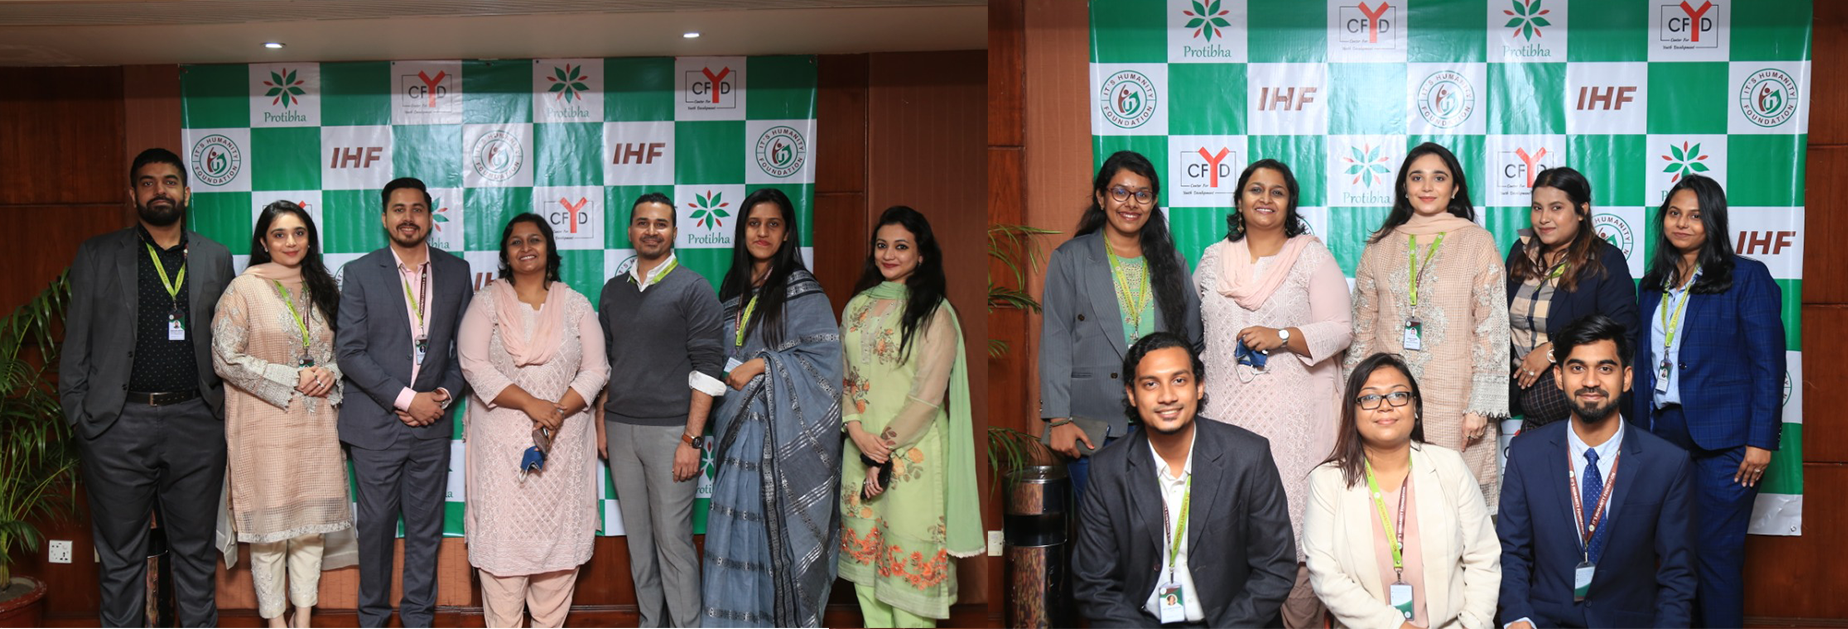 4th Annual General Meeting of IHF